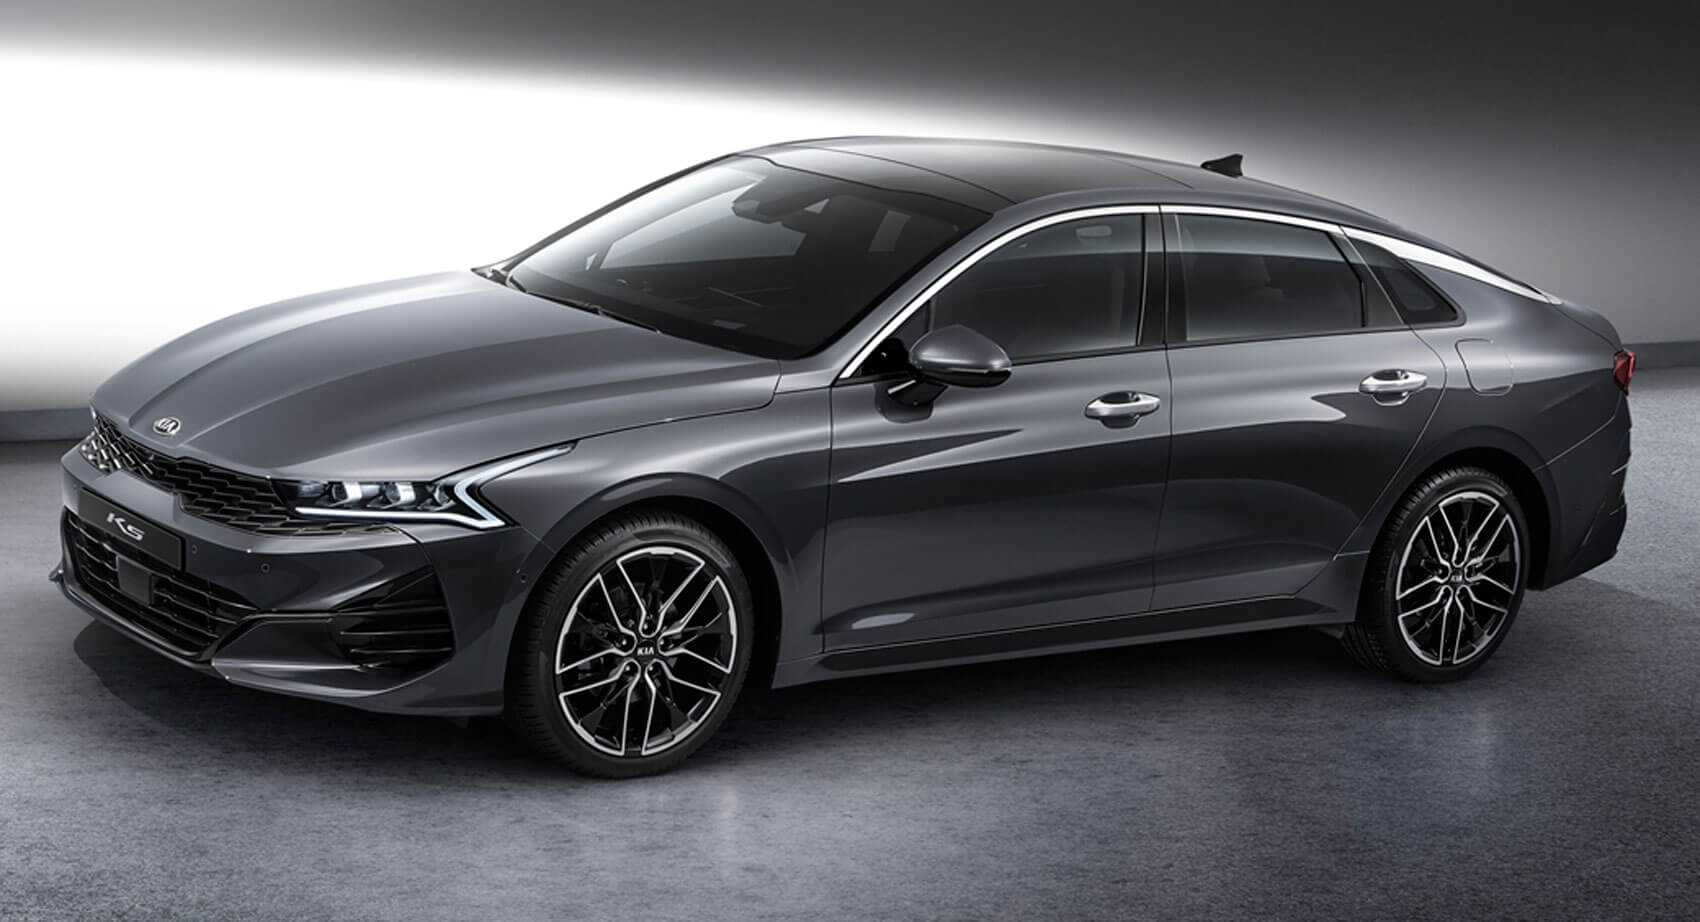 2021 Kia Optima Revealed In South Korea With Sleek Design - 2022 Kia Optima All Black Change, Release Date, Rumor